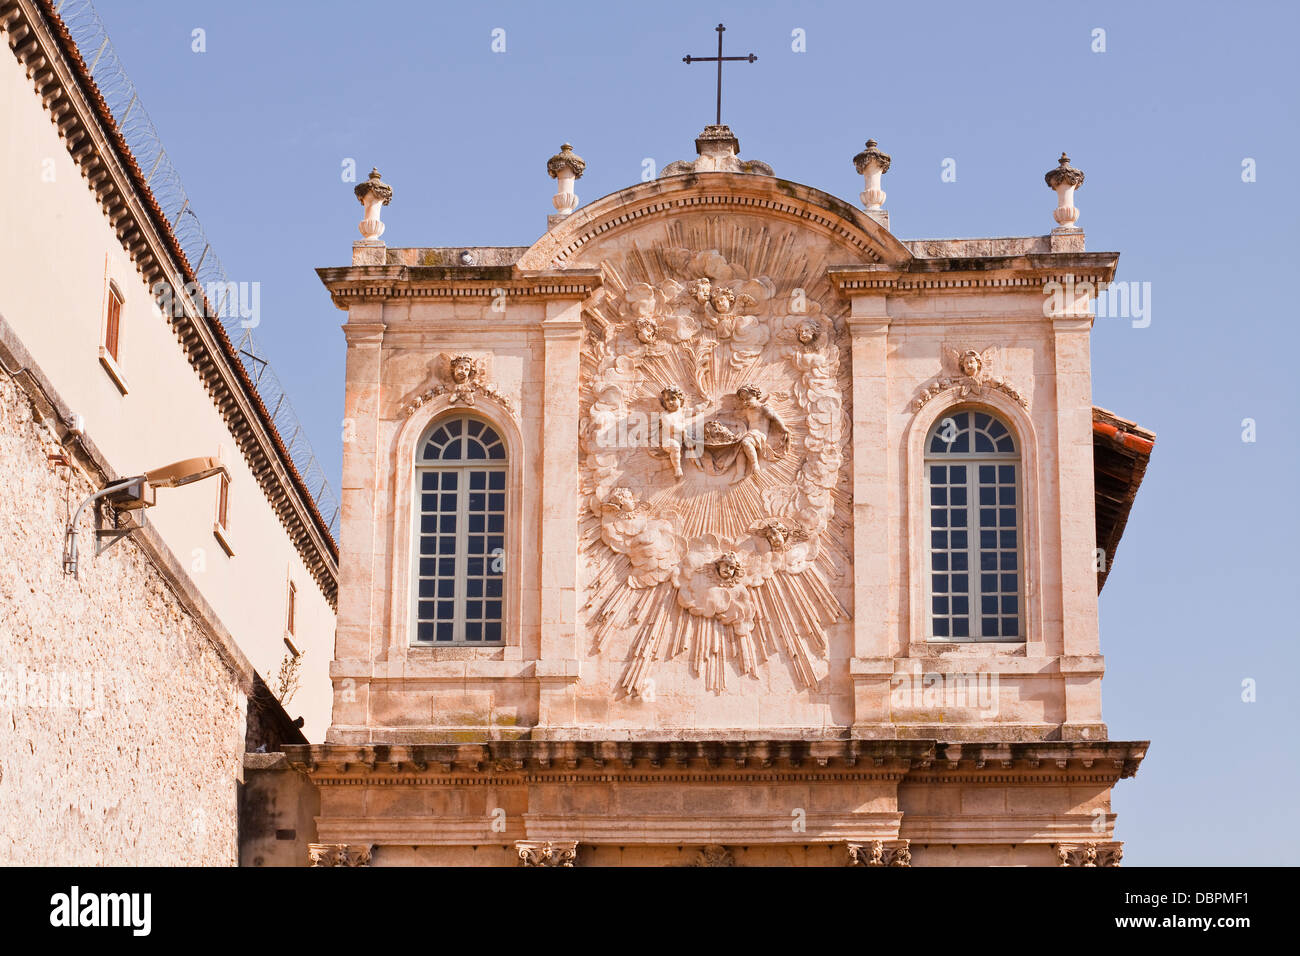 Chapelle Des Penitents Noirs de la Misericorde in the city of Avignon, Vaucluse, France, Europe - Stock Image